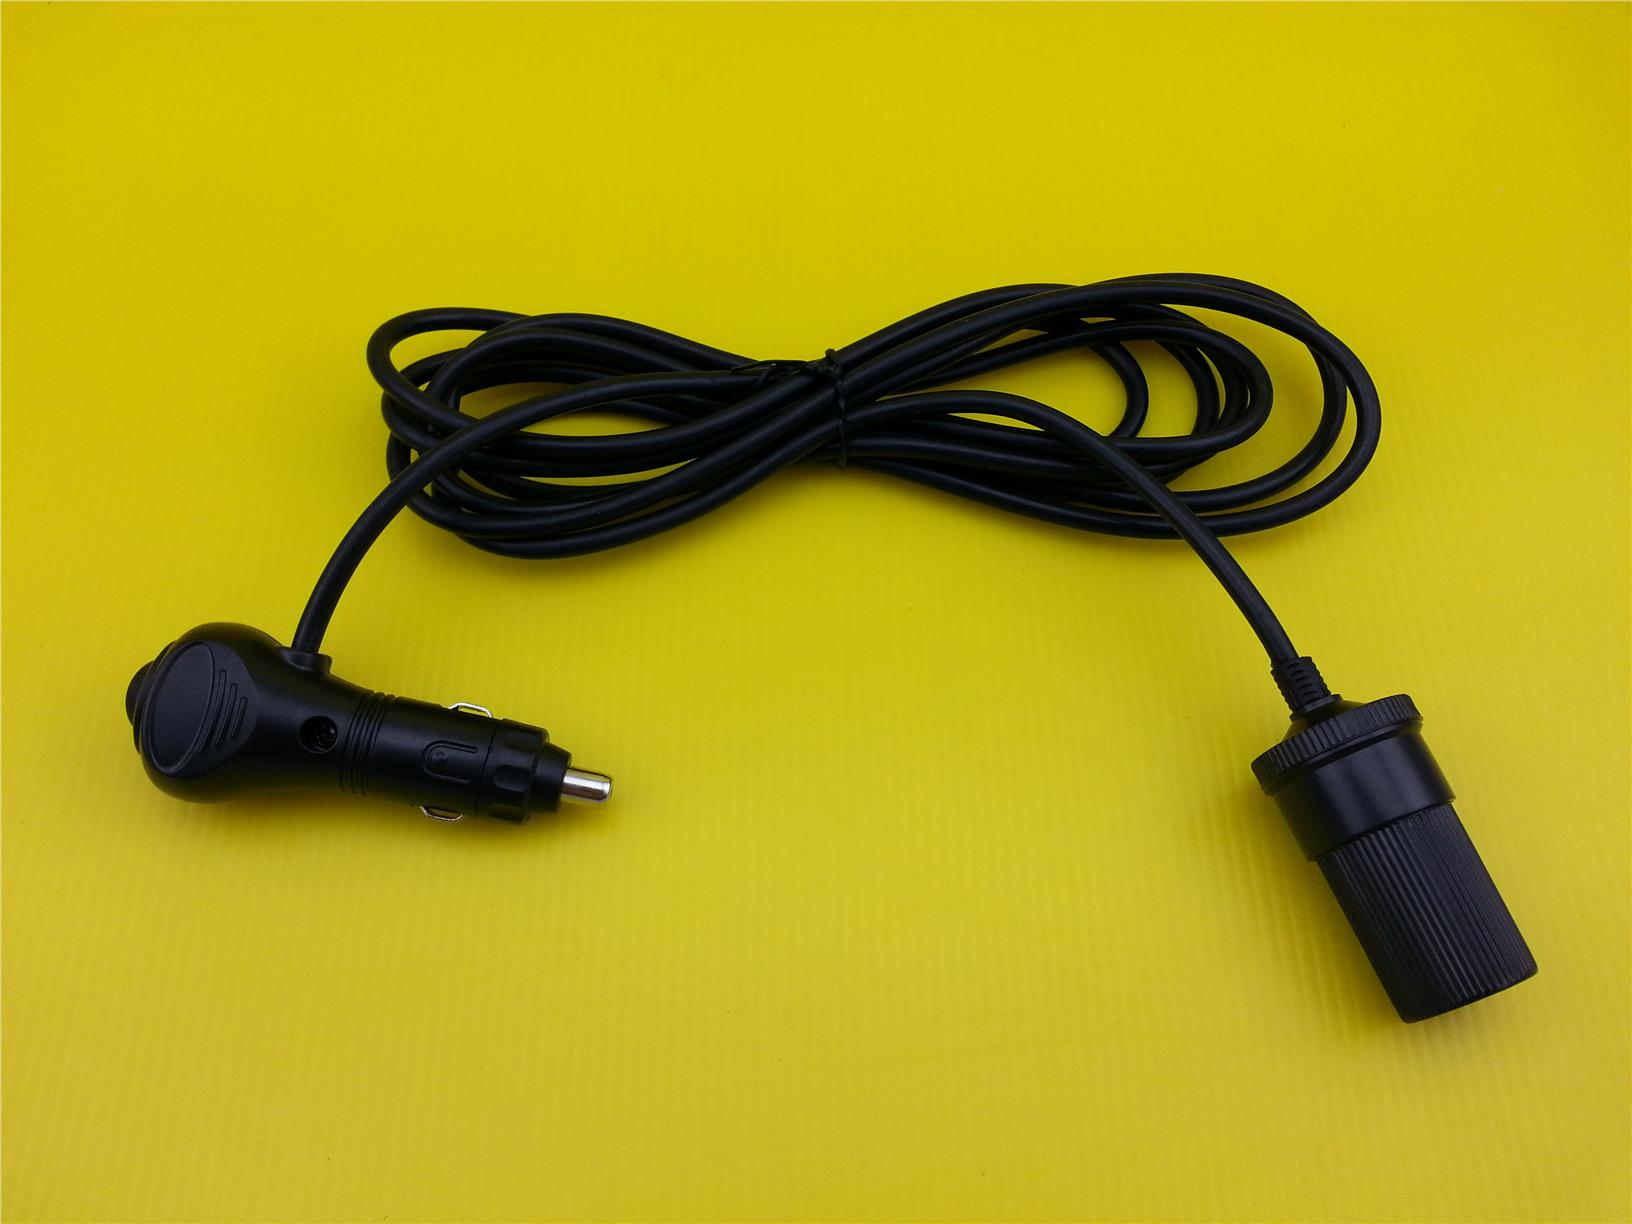 12V 15A 180W Car Cigarette Lighter Socket Extension Cord Cable With Sw